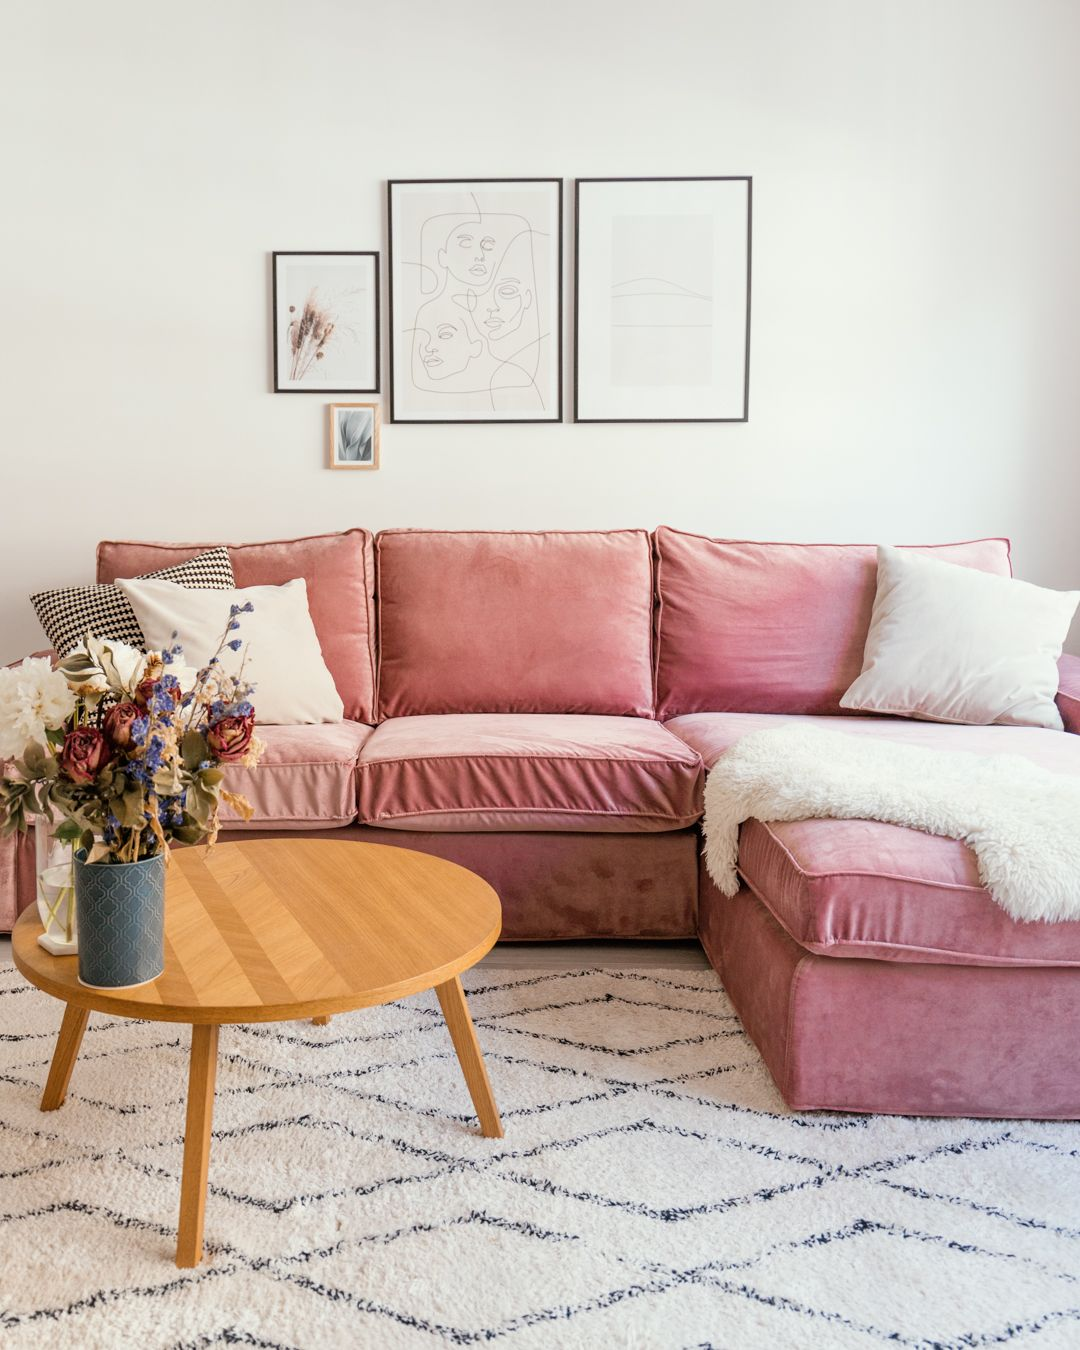 Ikea Kivik Velvet Pink Couch Cover By Bemz Pink Couch Living Room Pink Sofa Living Room Ikea Sofa Covers